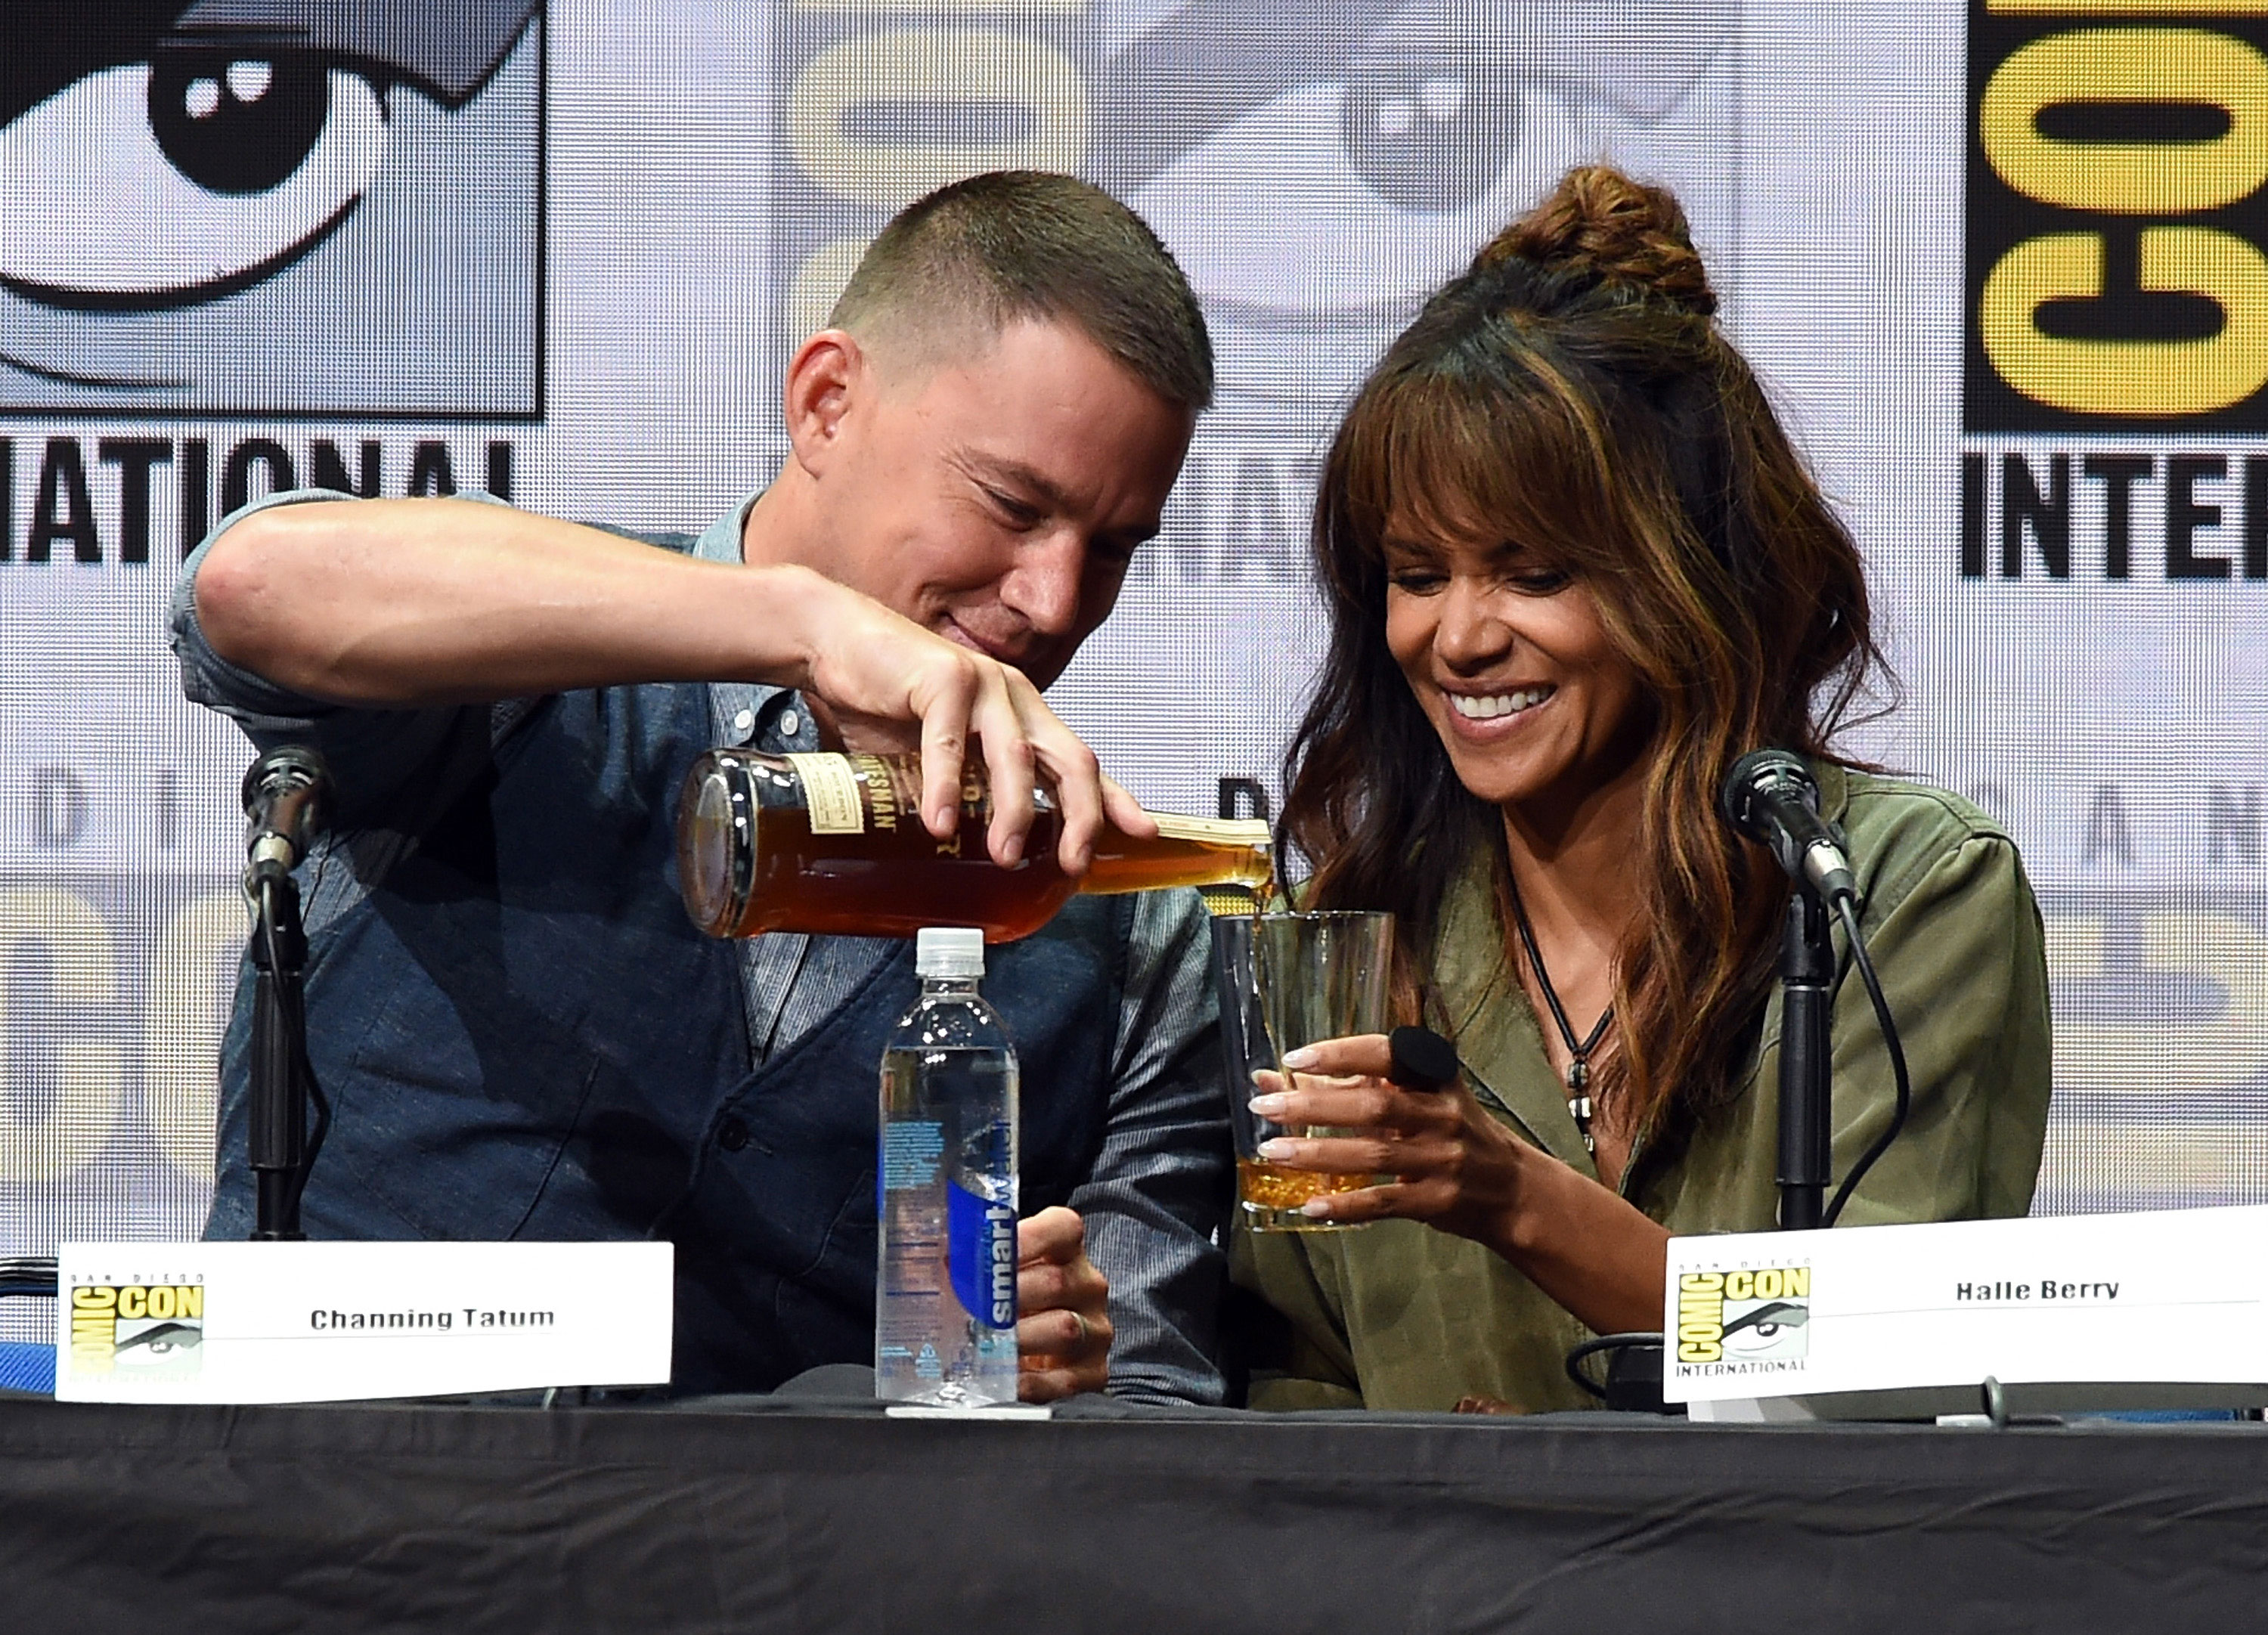 20 halle berry channing tatum drink comic con 2017 see halle berry drink bourbon onstage